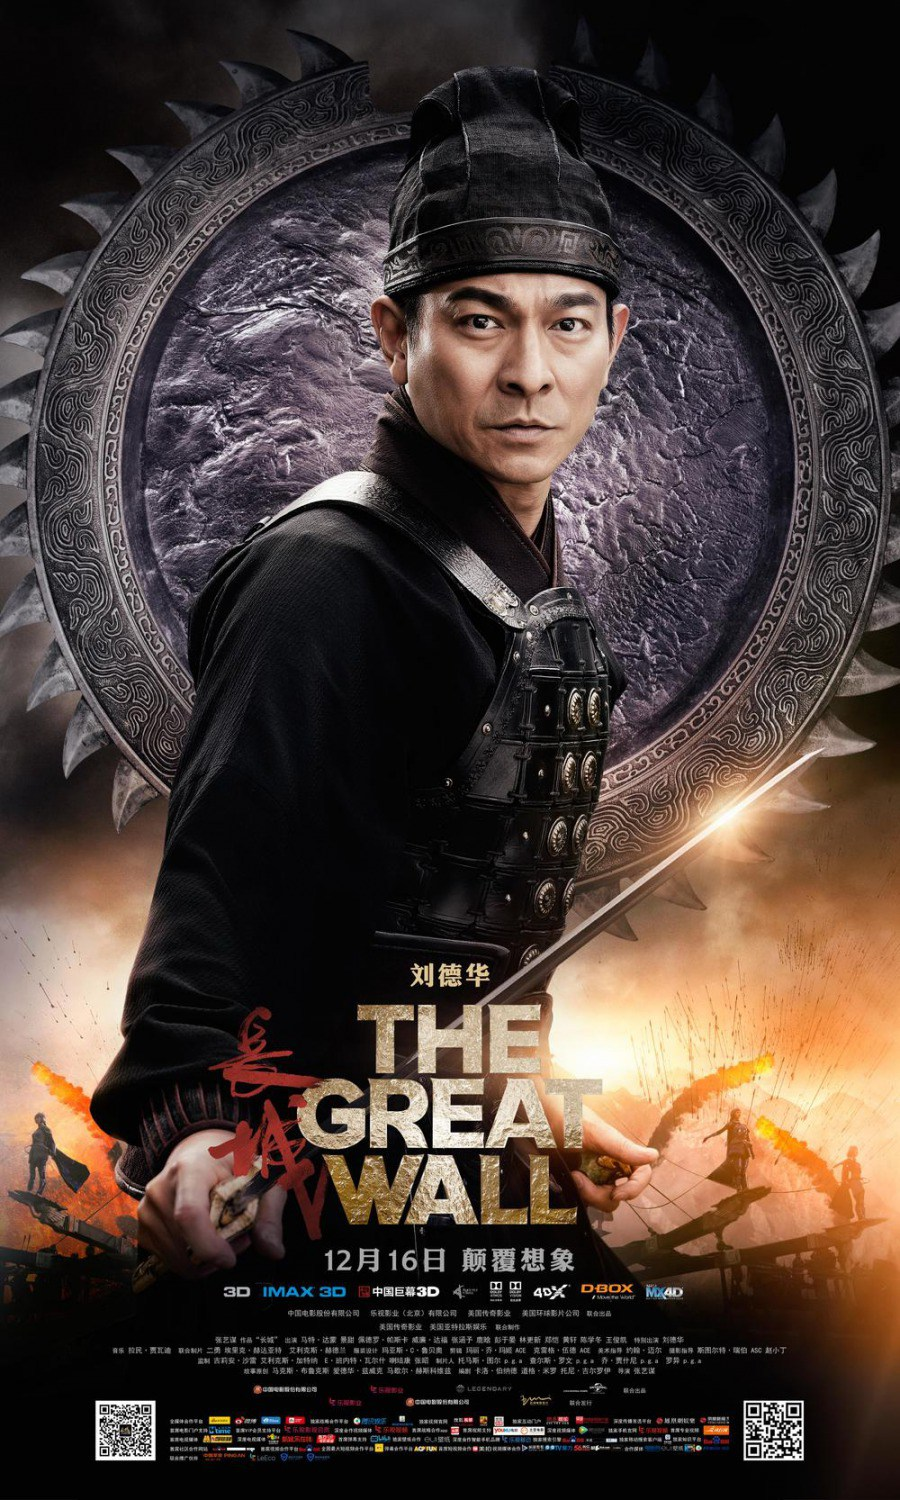 The Great Wall - Andy Lau